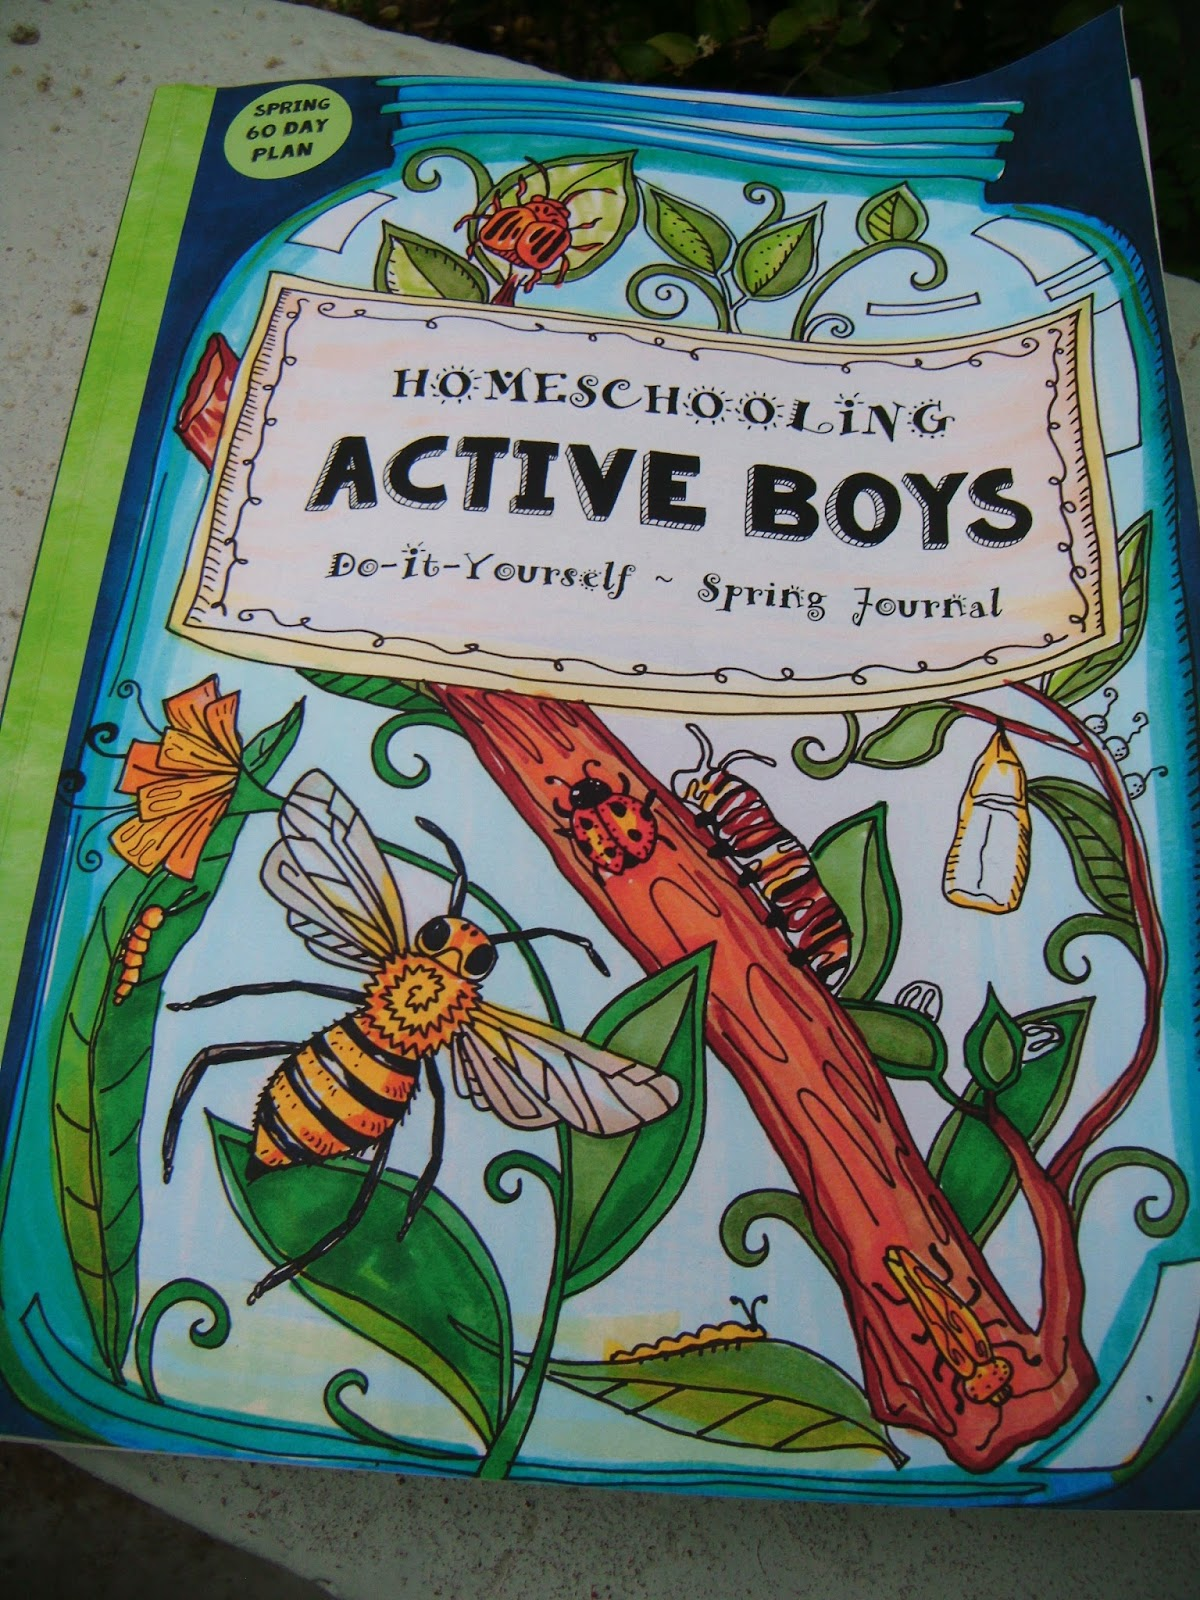 The abcd diaries homeschooling active boys journal by sarah janisse because he gets bored easily with traditional curriculum options we were excited to find homeschooling active boys do it yourself spring journal 3 solutioingenieria Image collections